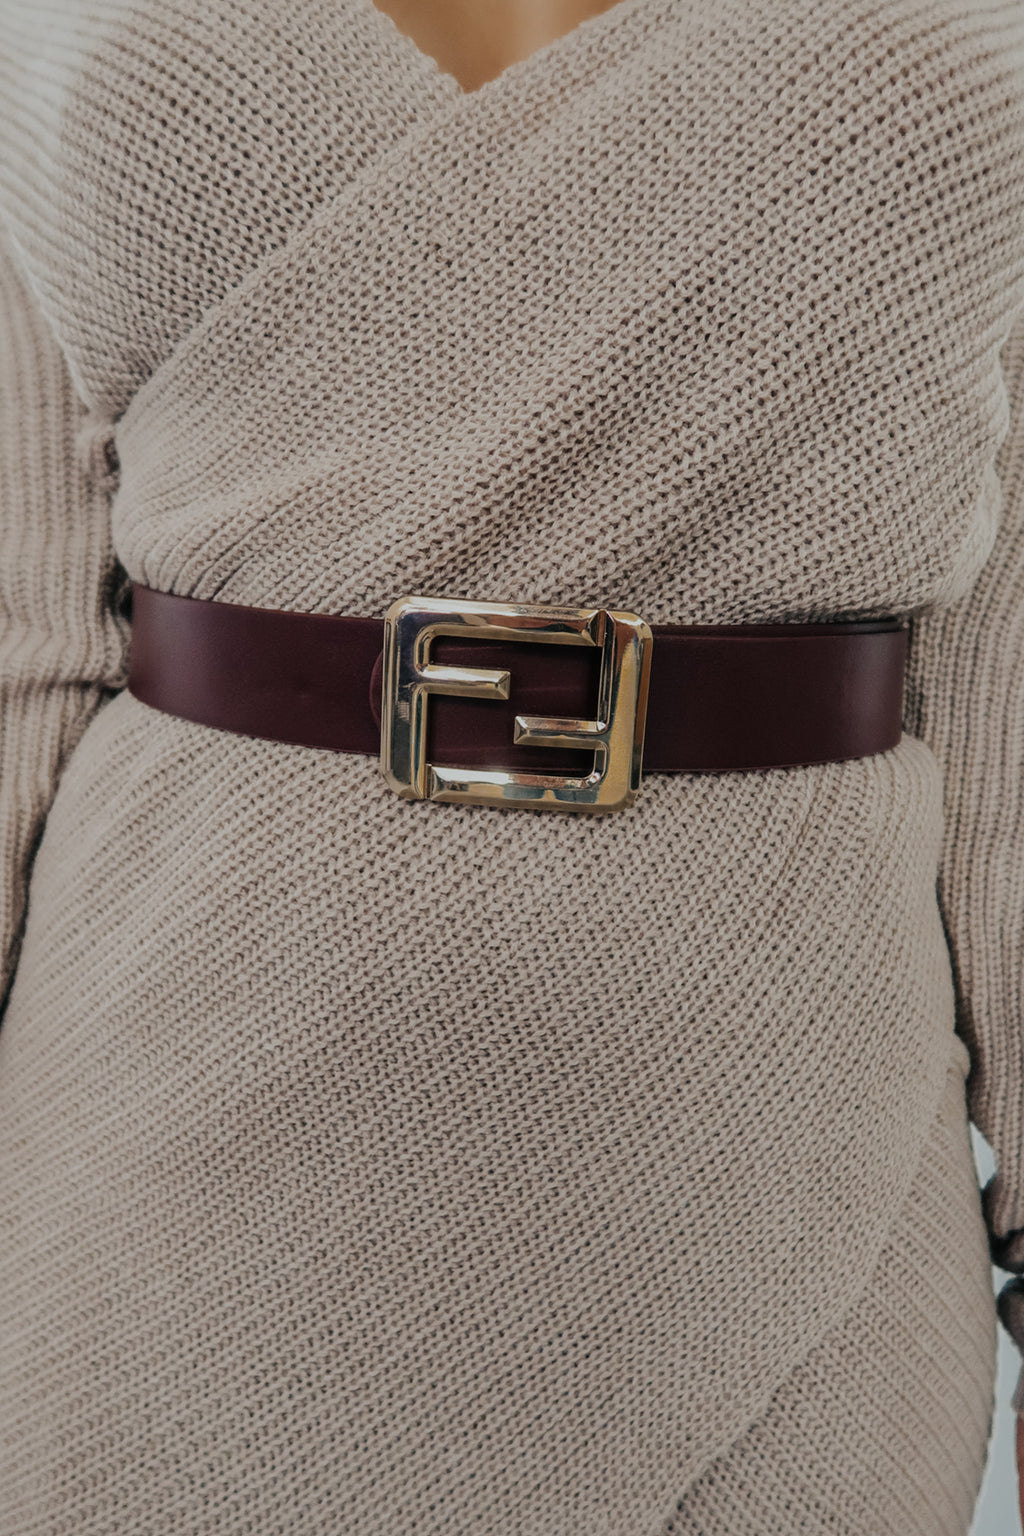 All Around Me Belt: Burgundy/Gold